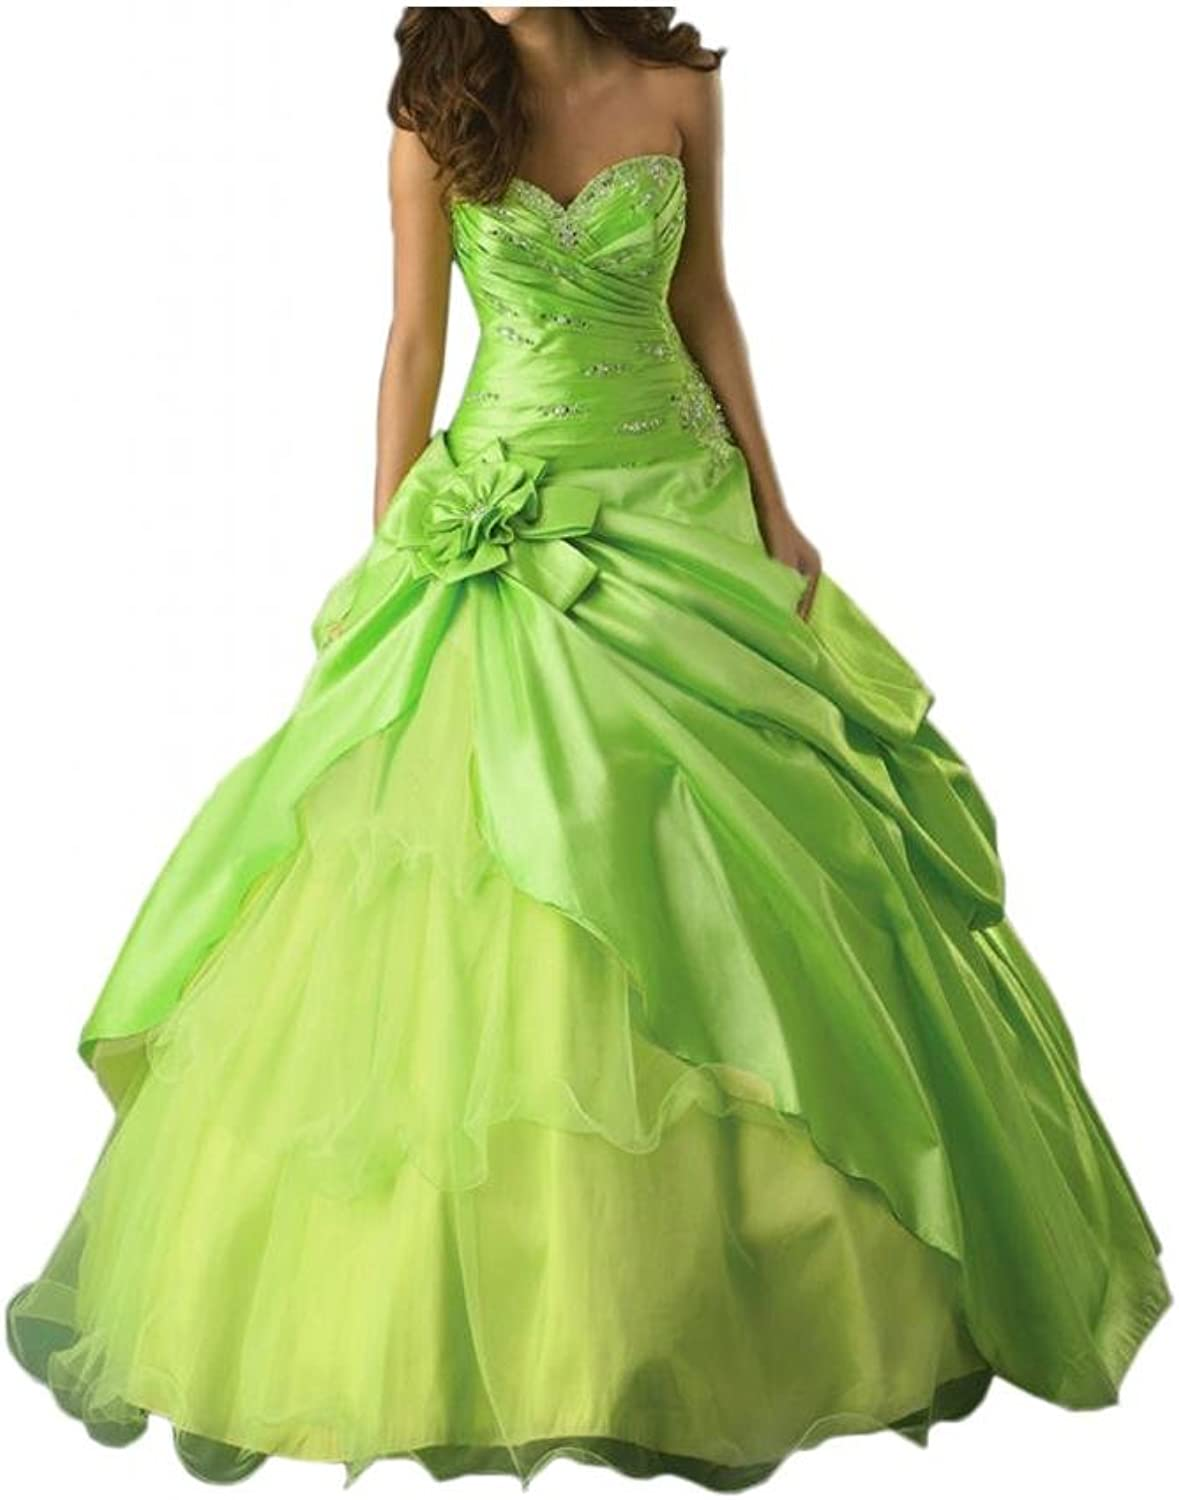 Angel Bride Bright Sweetheart Flower Ruffles Taffeta Tulle Quinceanera Dresses